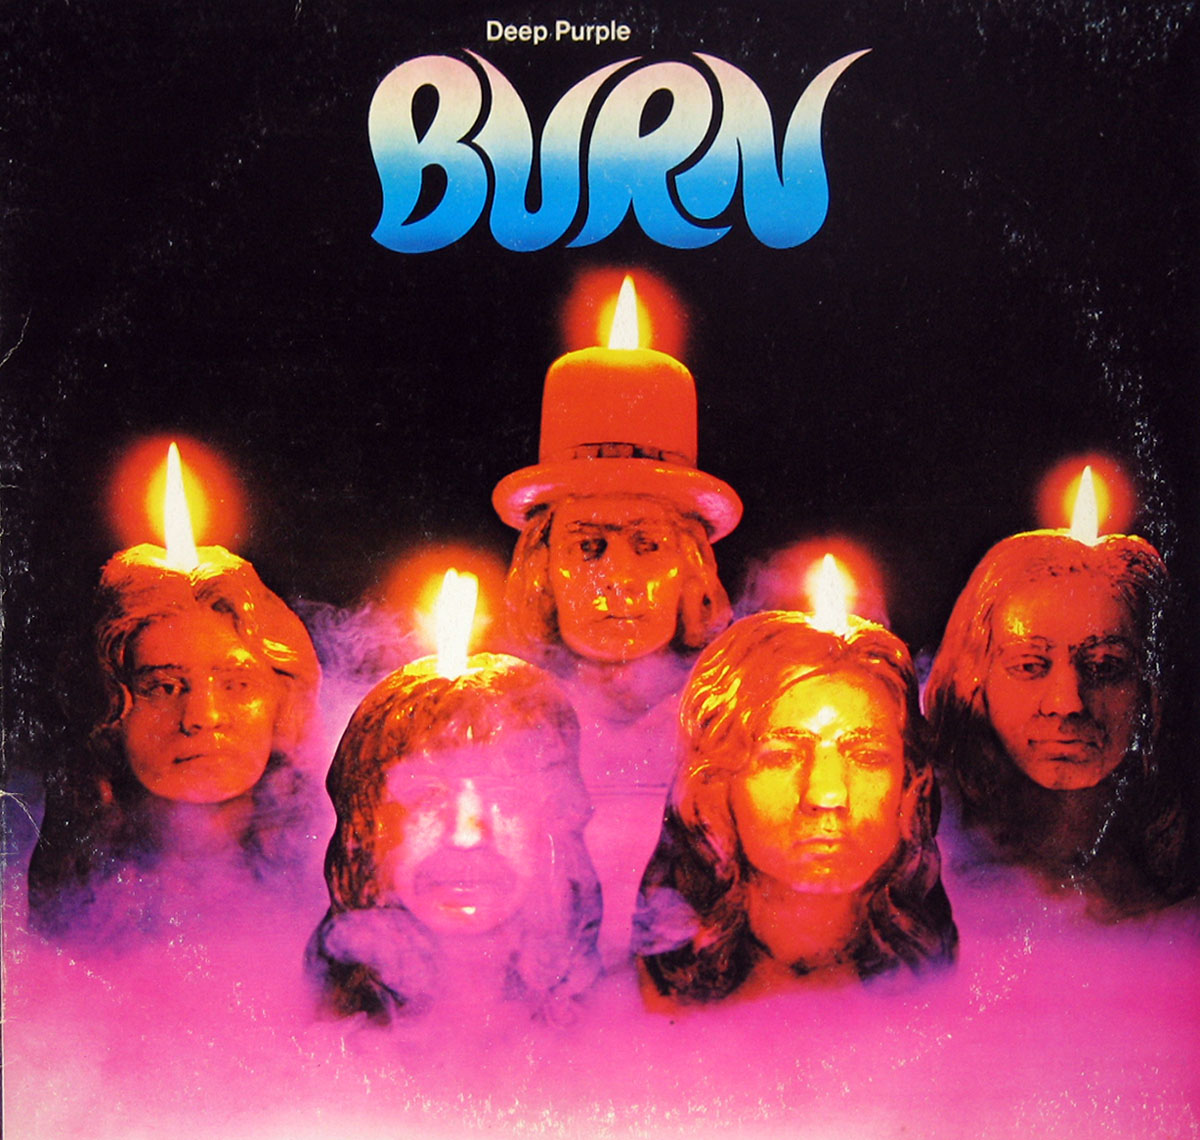 High Resolution #1 Photo DEEP PURPLE Burn Italy